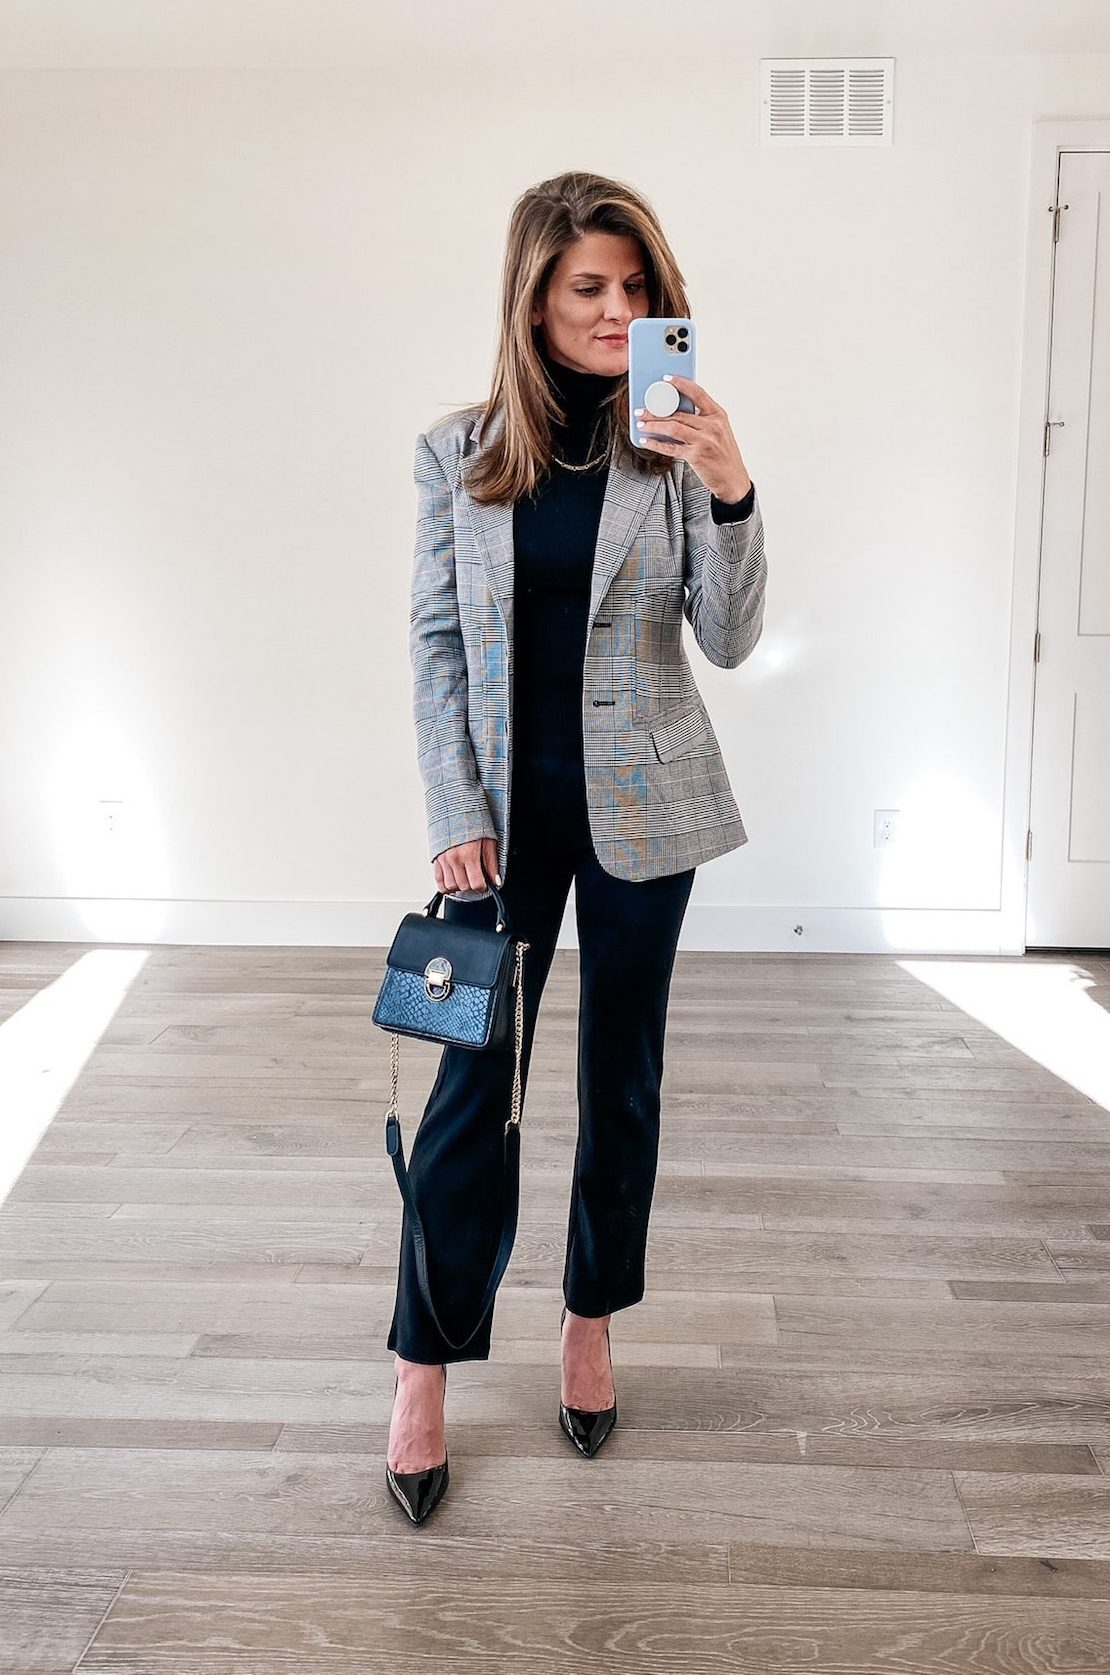 how to stye a black turtleneck for work, plaid blazer, all black outfit, business casual outfit, winter outfit